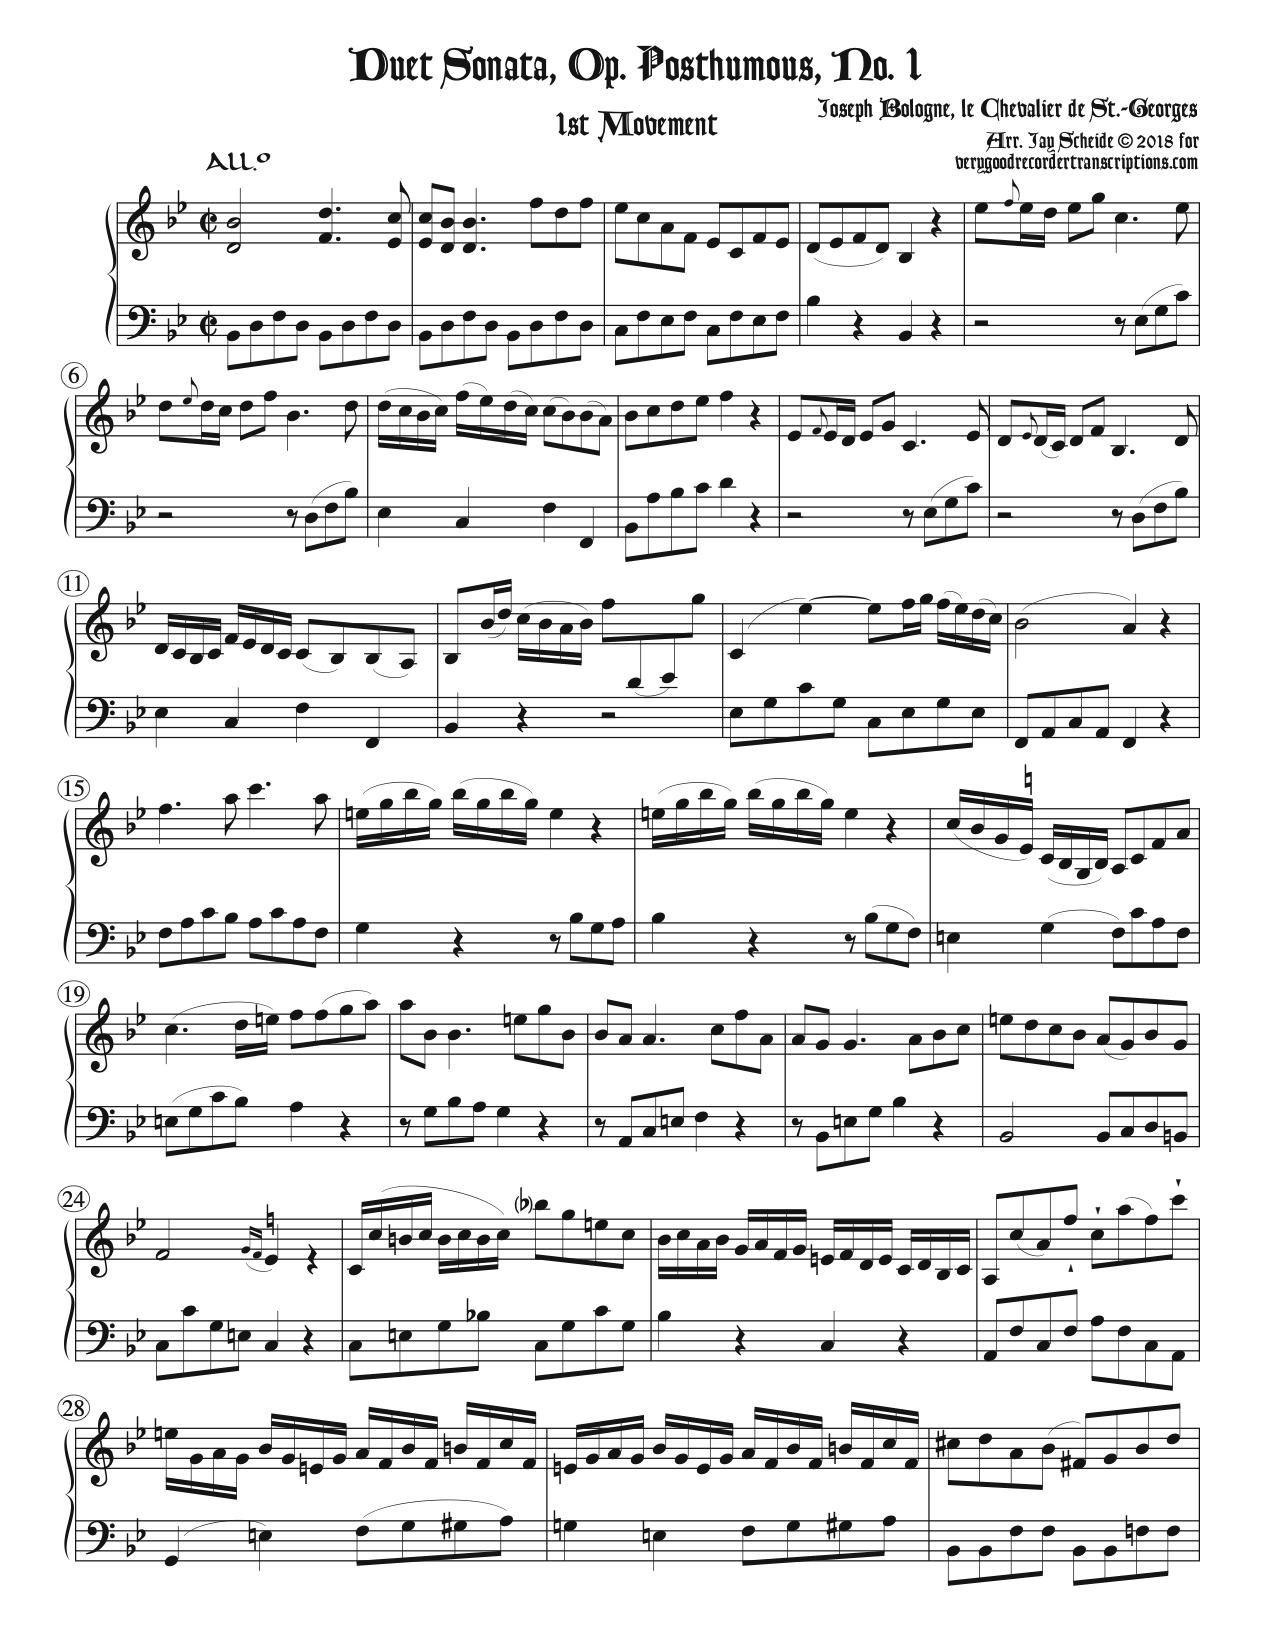 1st Mvt. from Sonata No. 1, Op. Posthumous, two versions